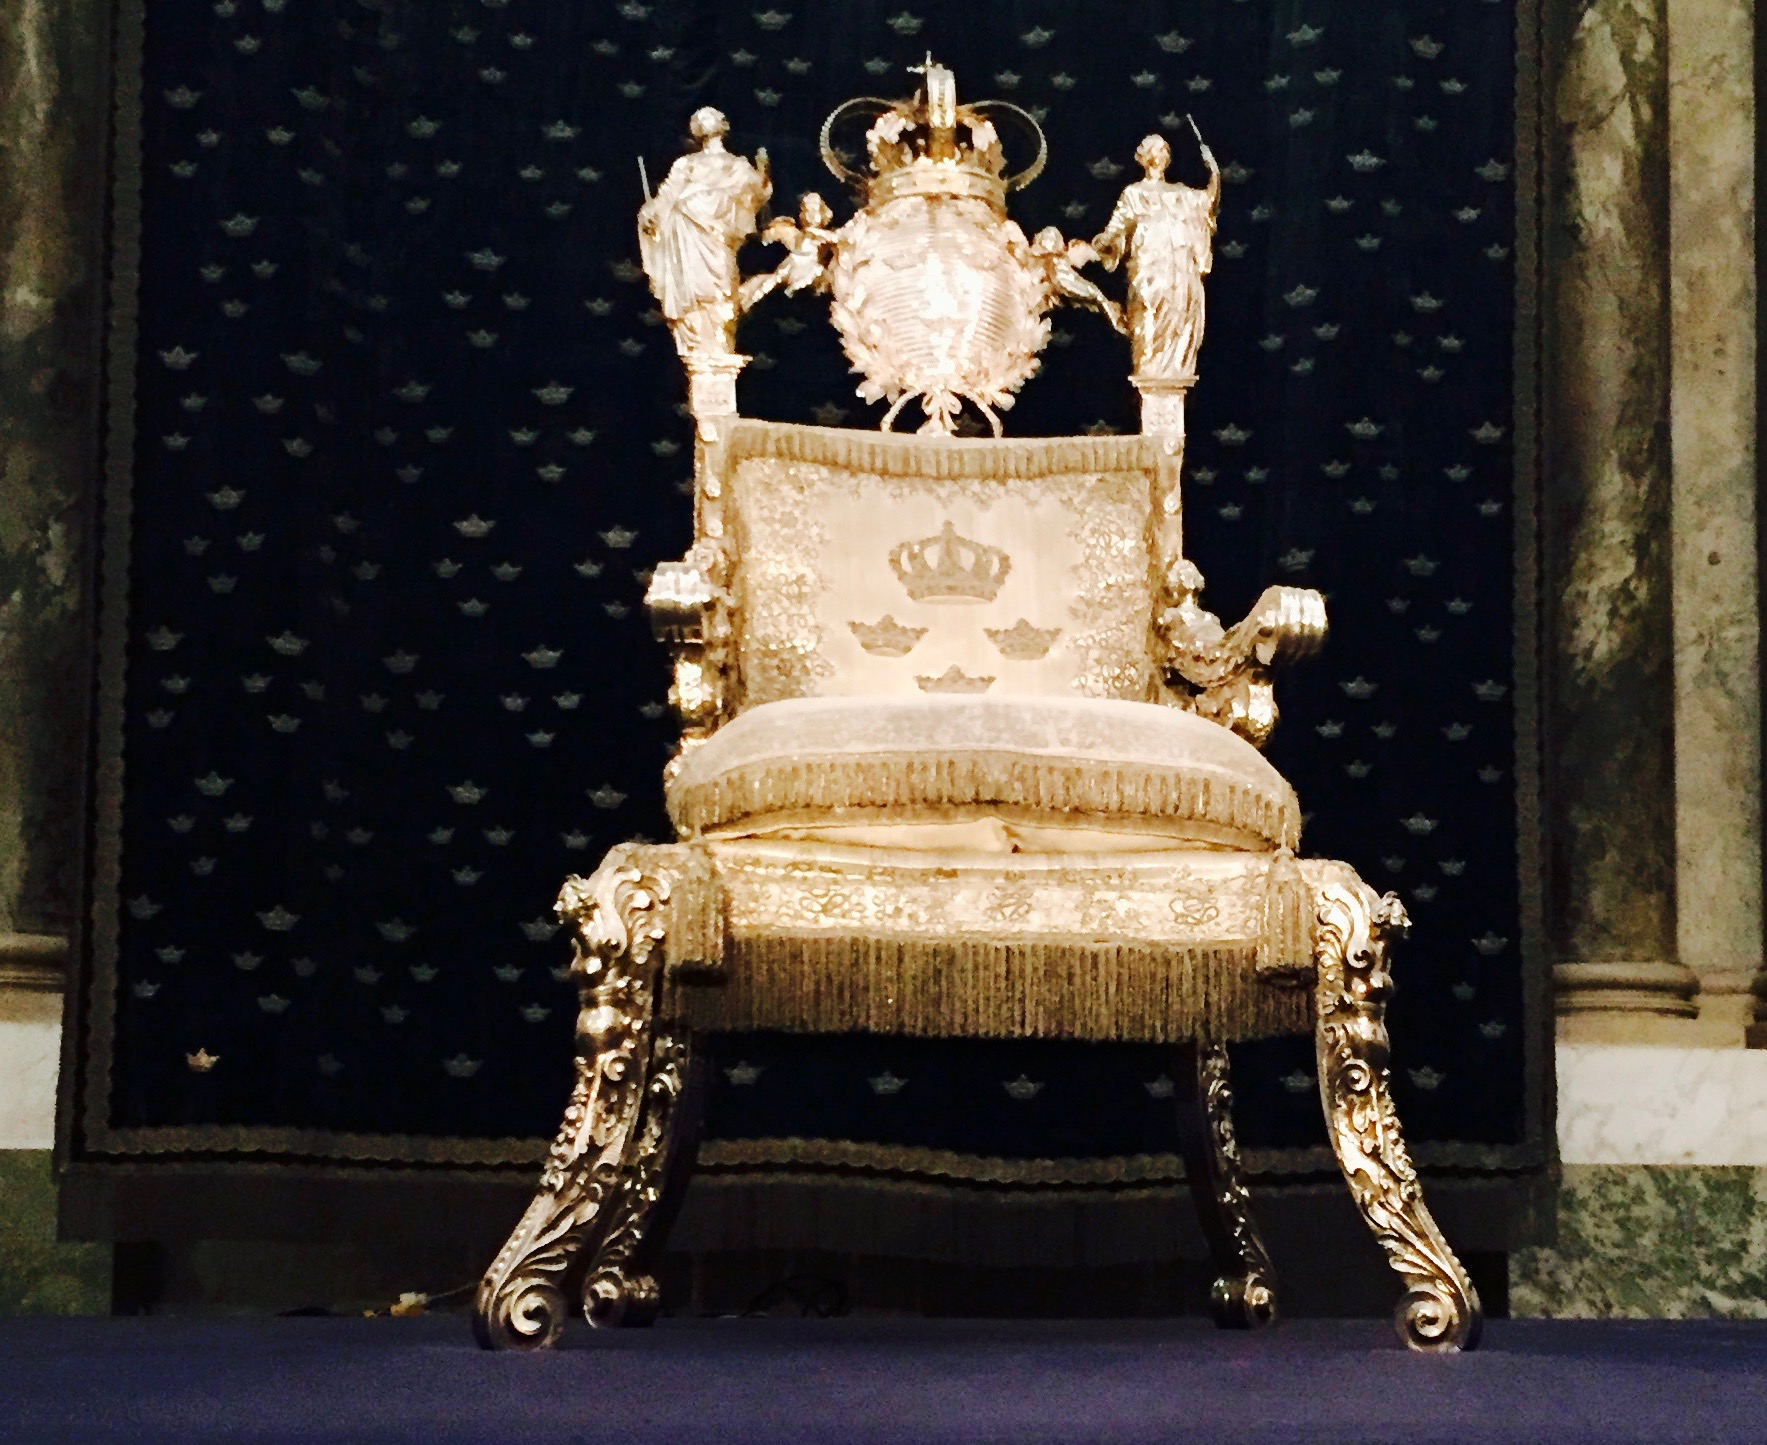 The Coronation Throne. I think the chances of me ever sitting in that is pretty slim.